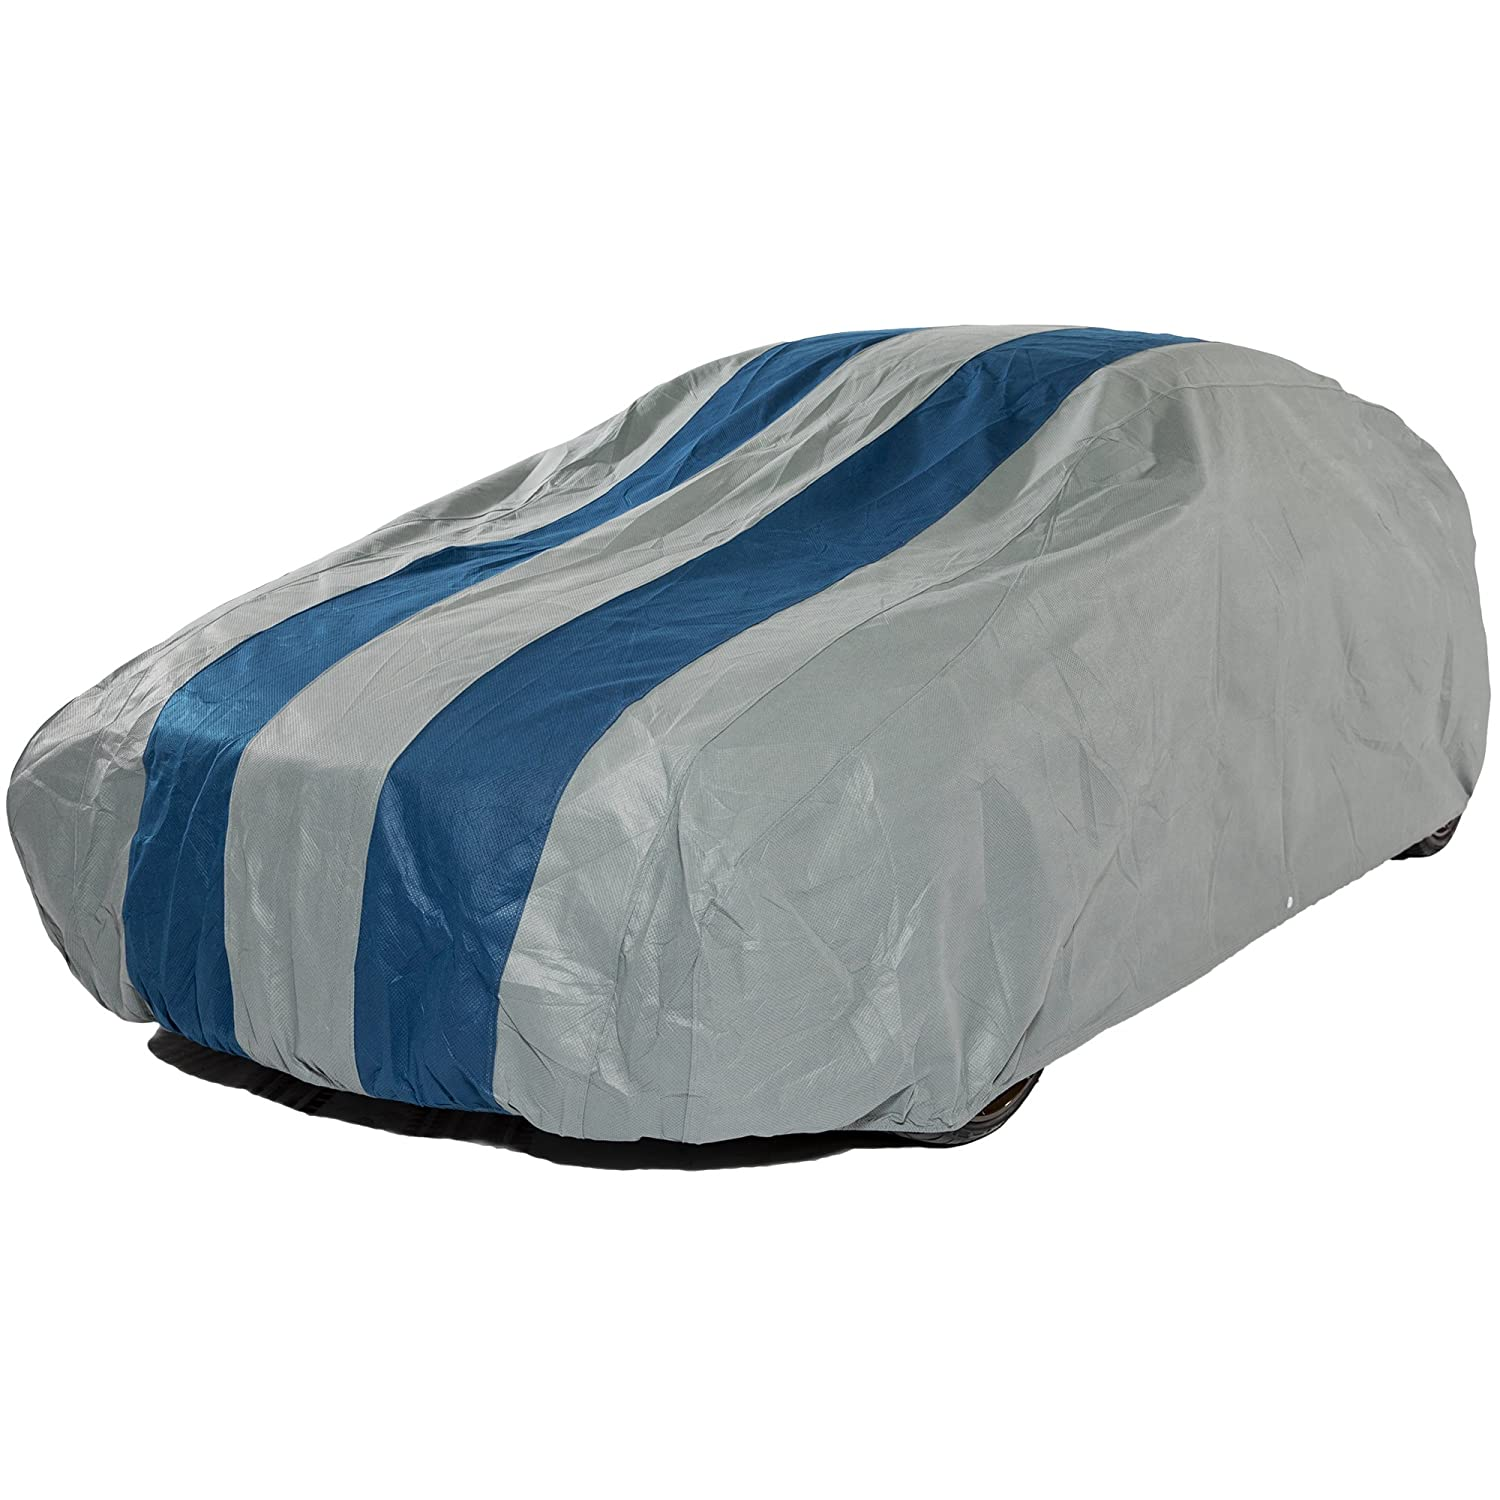 Fits Hatchbacks up to 13 ft. 5 in. L 1 Pack Duck Covers A4HB161 Rally X Defender Grey with Navy Blue Rally Stripes 161L x 59W x 51H Hatchback Cover